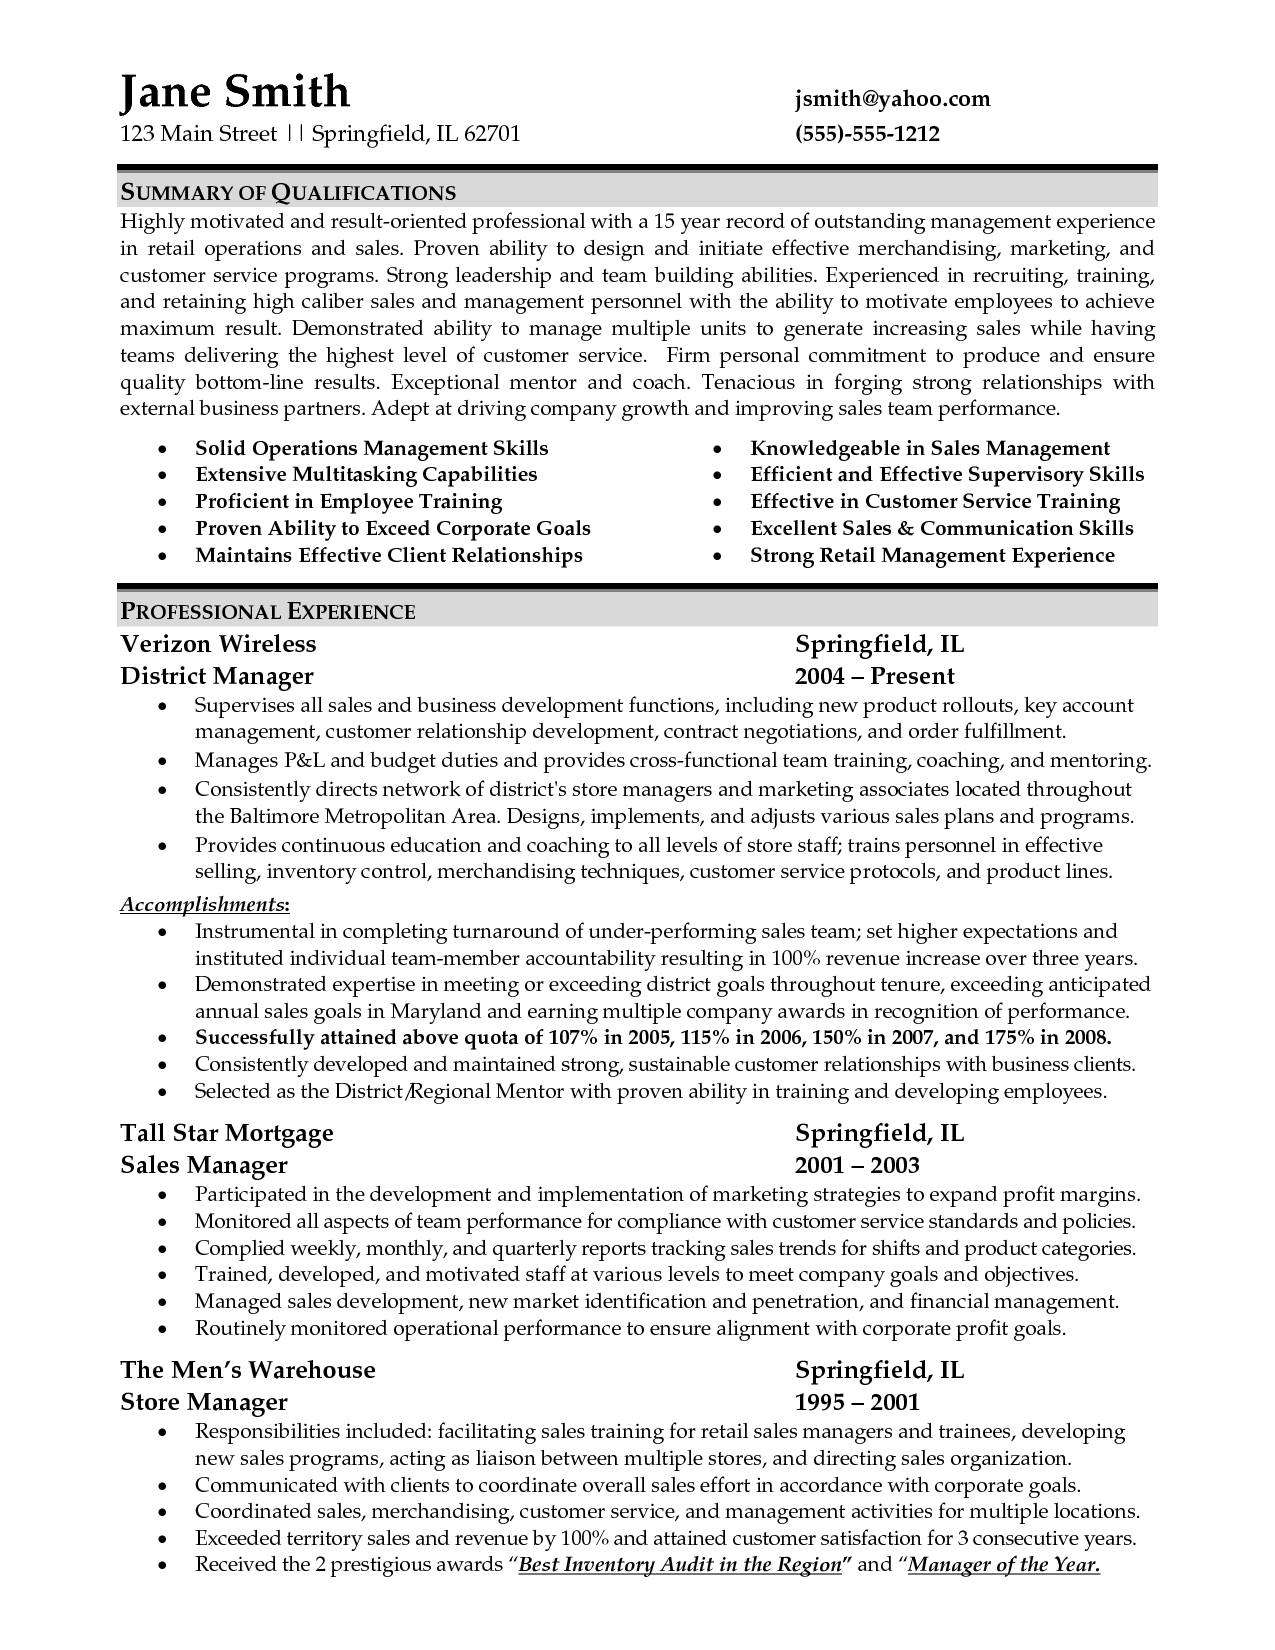 Sample resume for retail management job retail store manager sample resume for retail management job retail store manager resume district manager resume summary madrichimfo Images